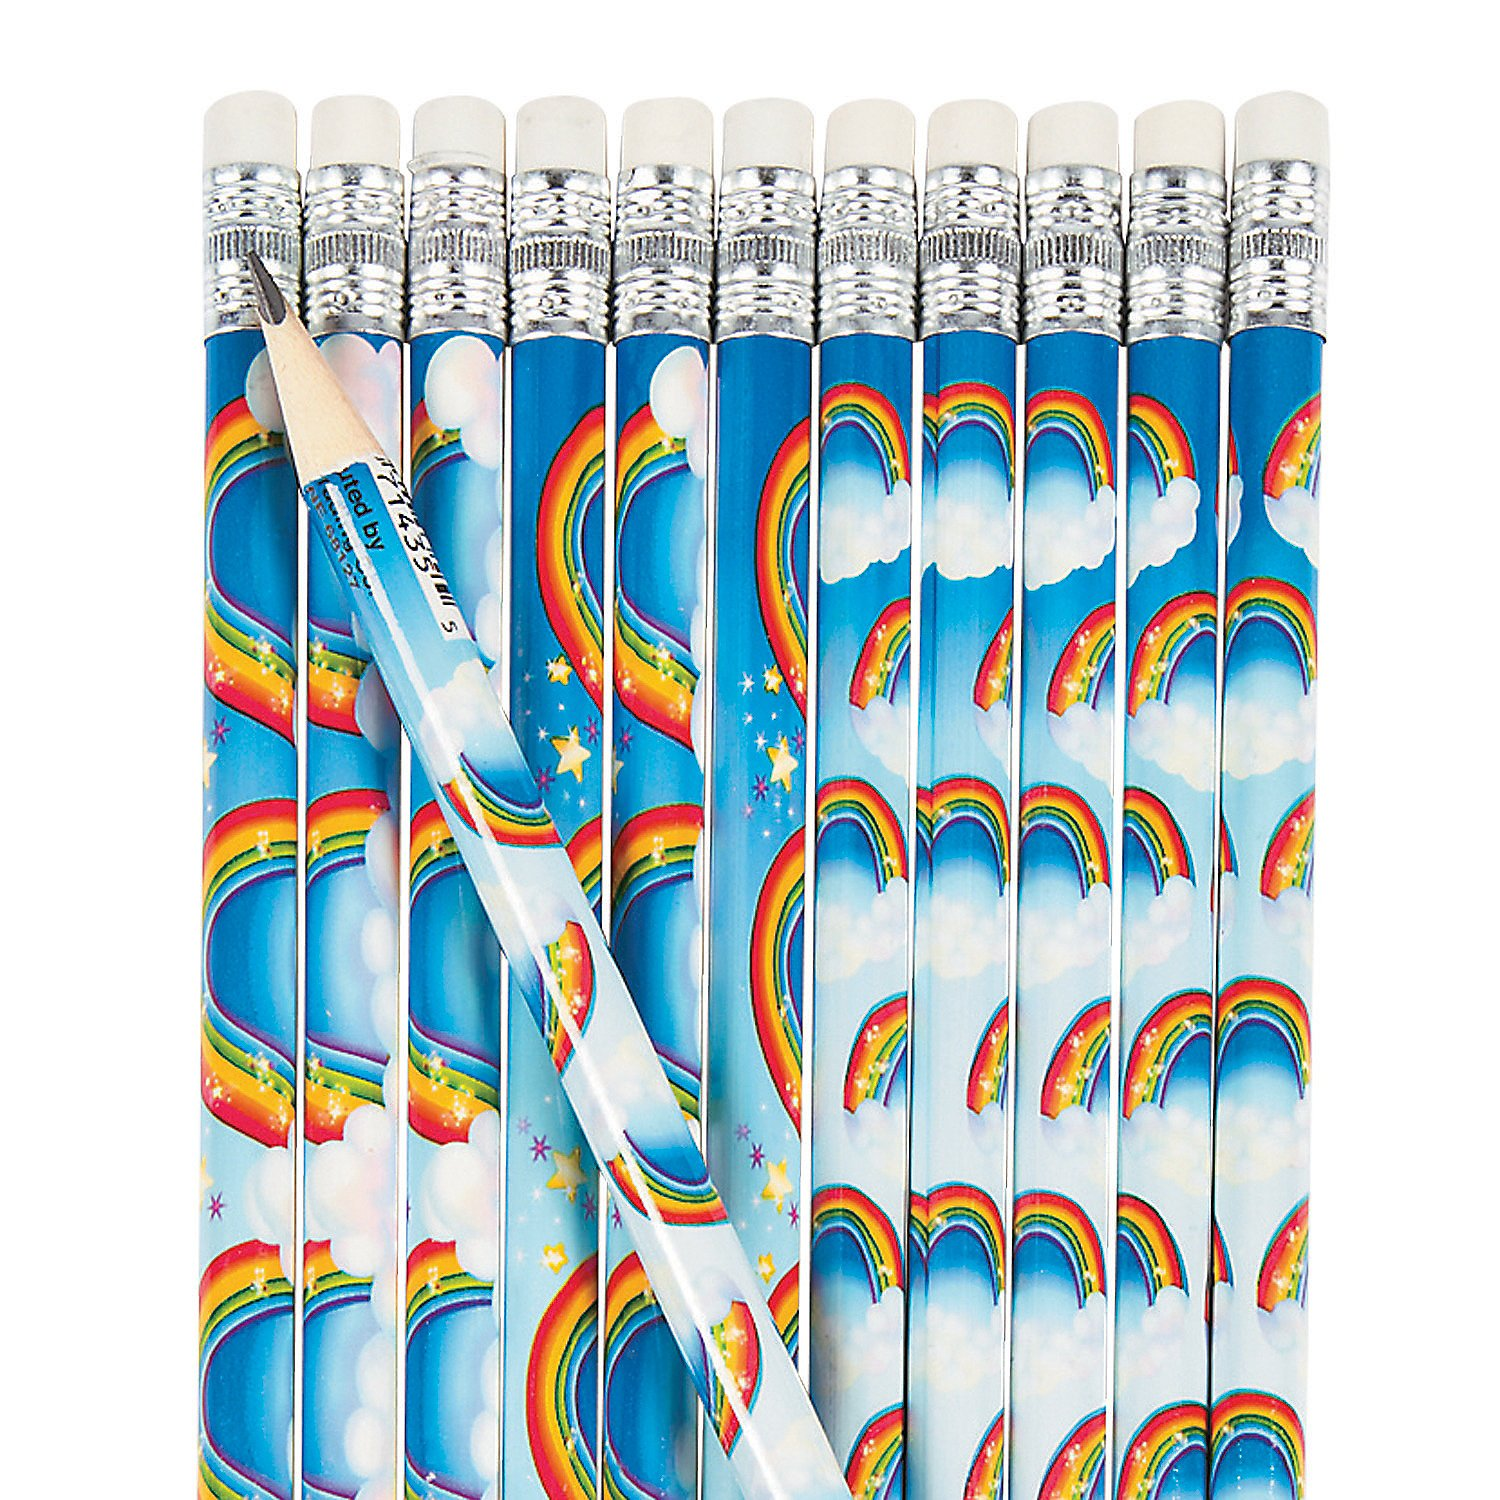 Fun Express - Rainbows & Clouds Pencils for Spring - Stationery - Pencils - Pencils - Printed - Spring - 24 Pieces